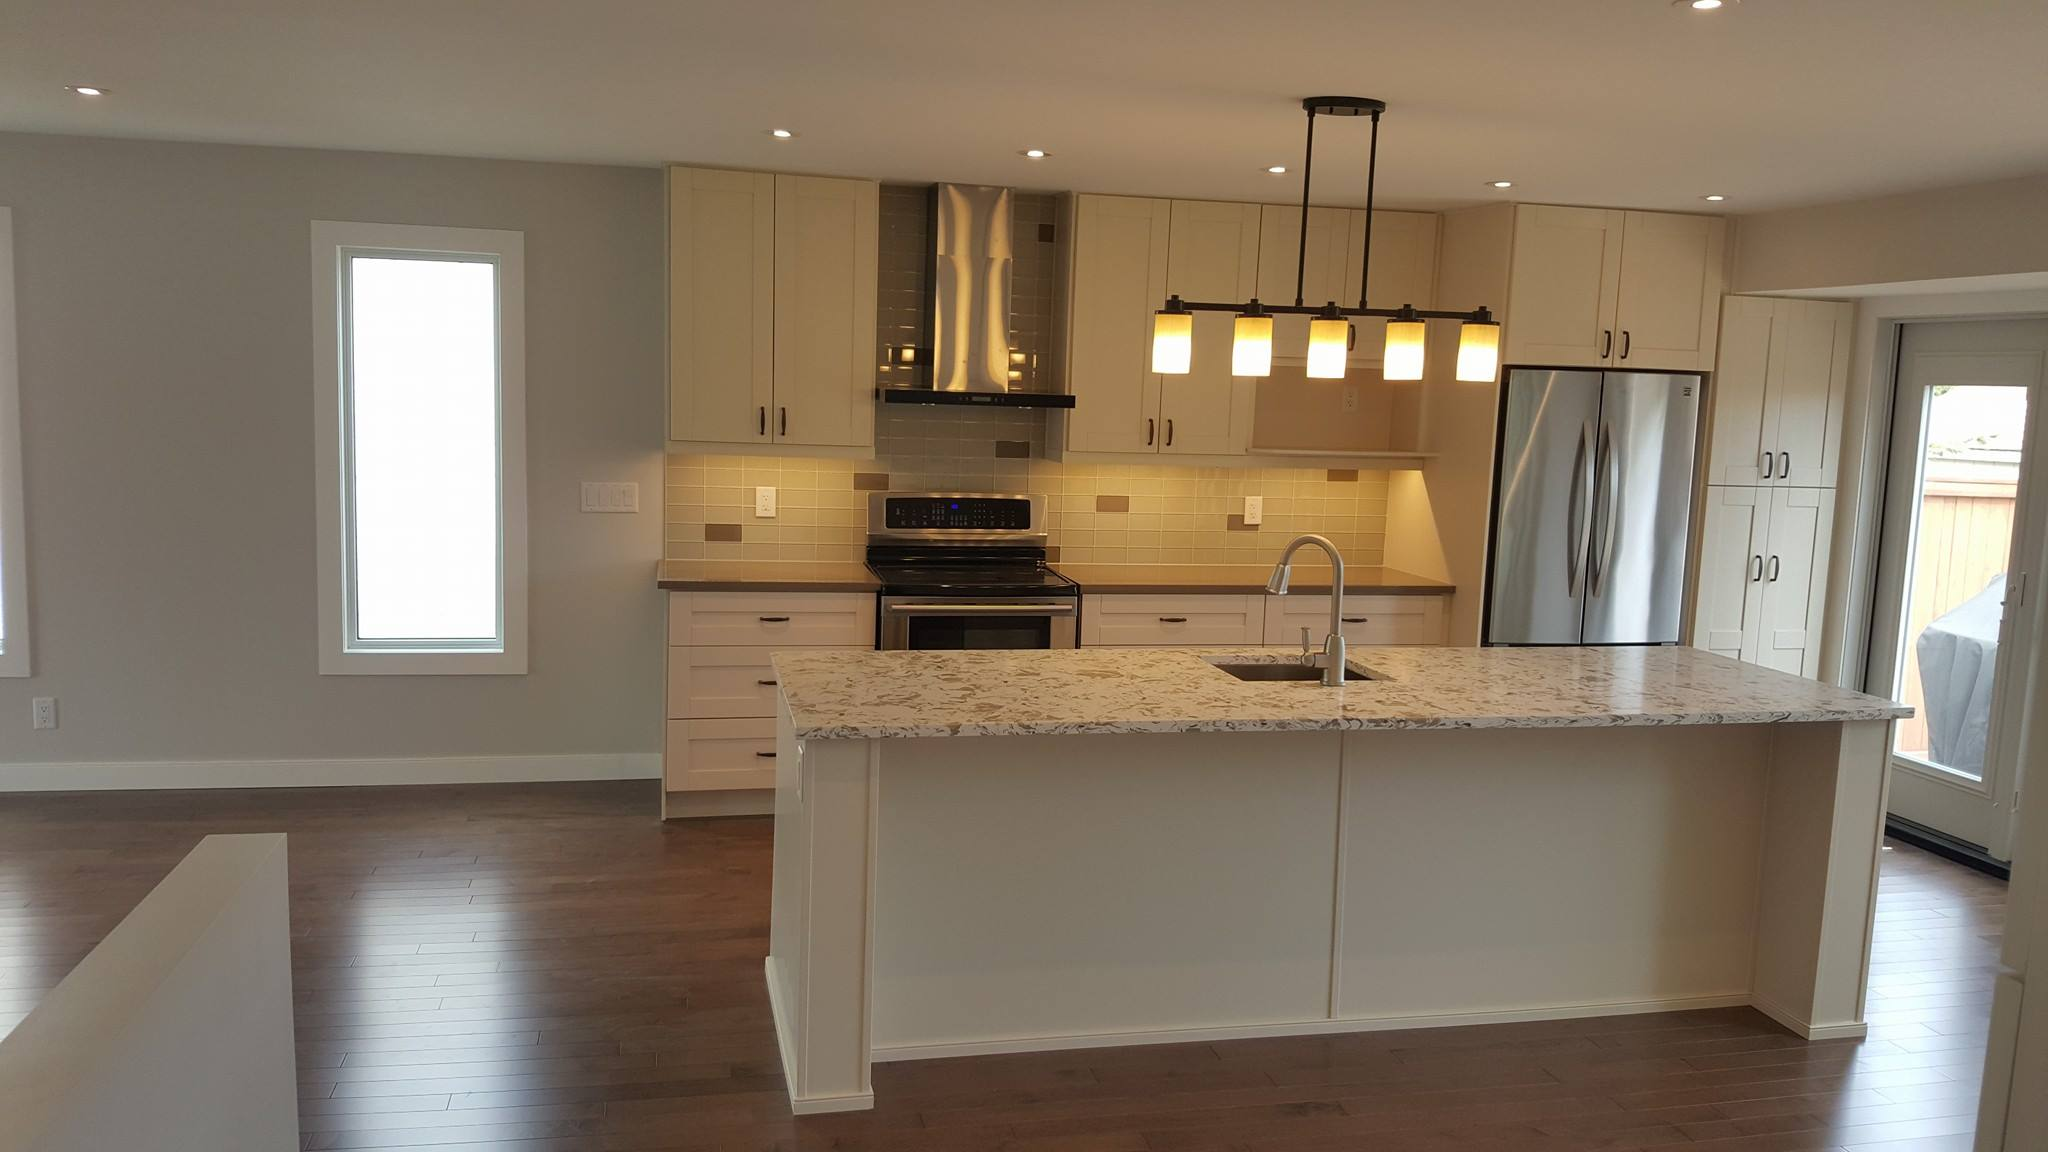 Cowry kitchen cabinets and countertops - Http Cowrycabinets Com Cowry Kitchen Cabinets Products 297 Pearl White Sigproid5f5529d16e